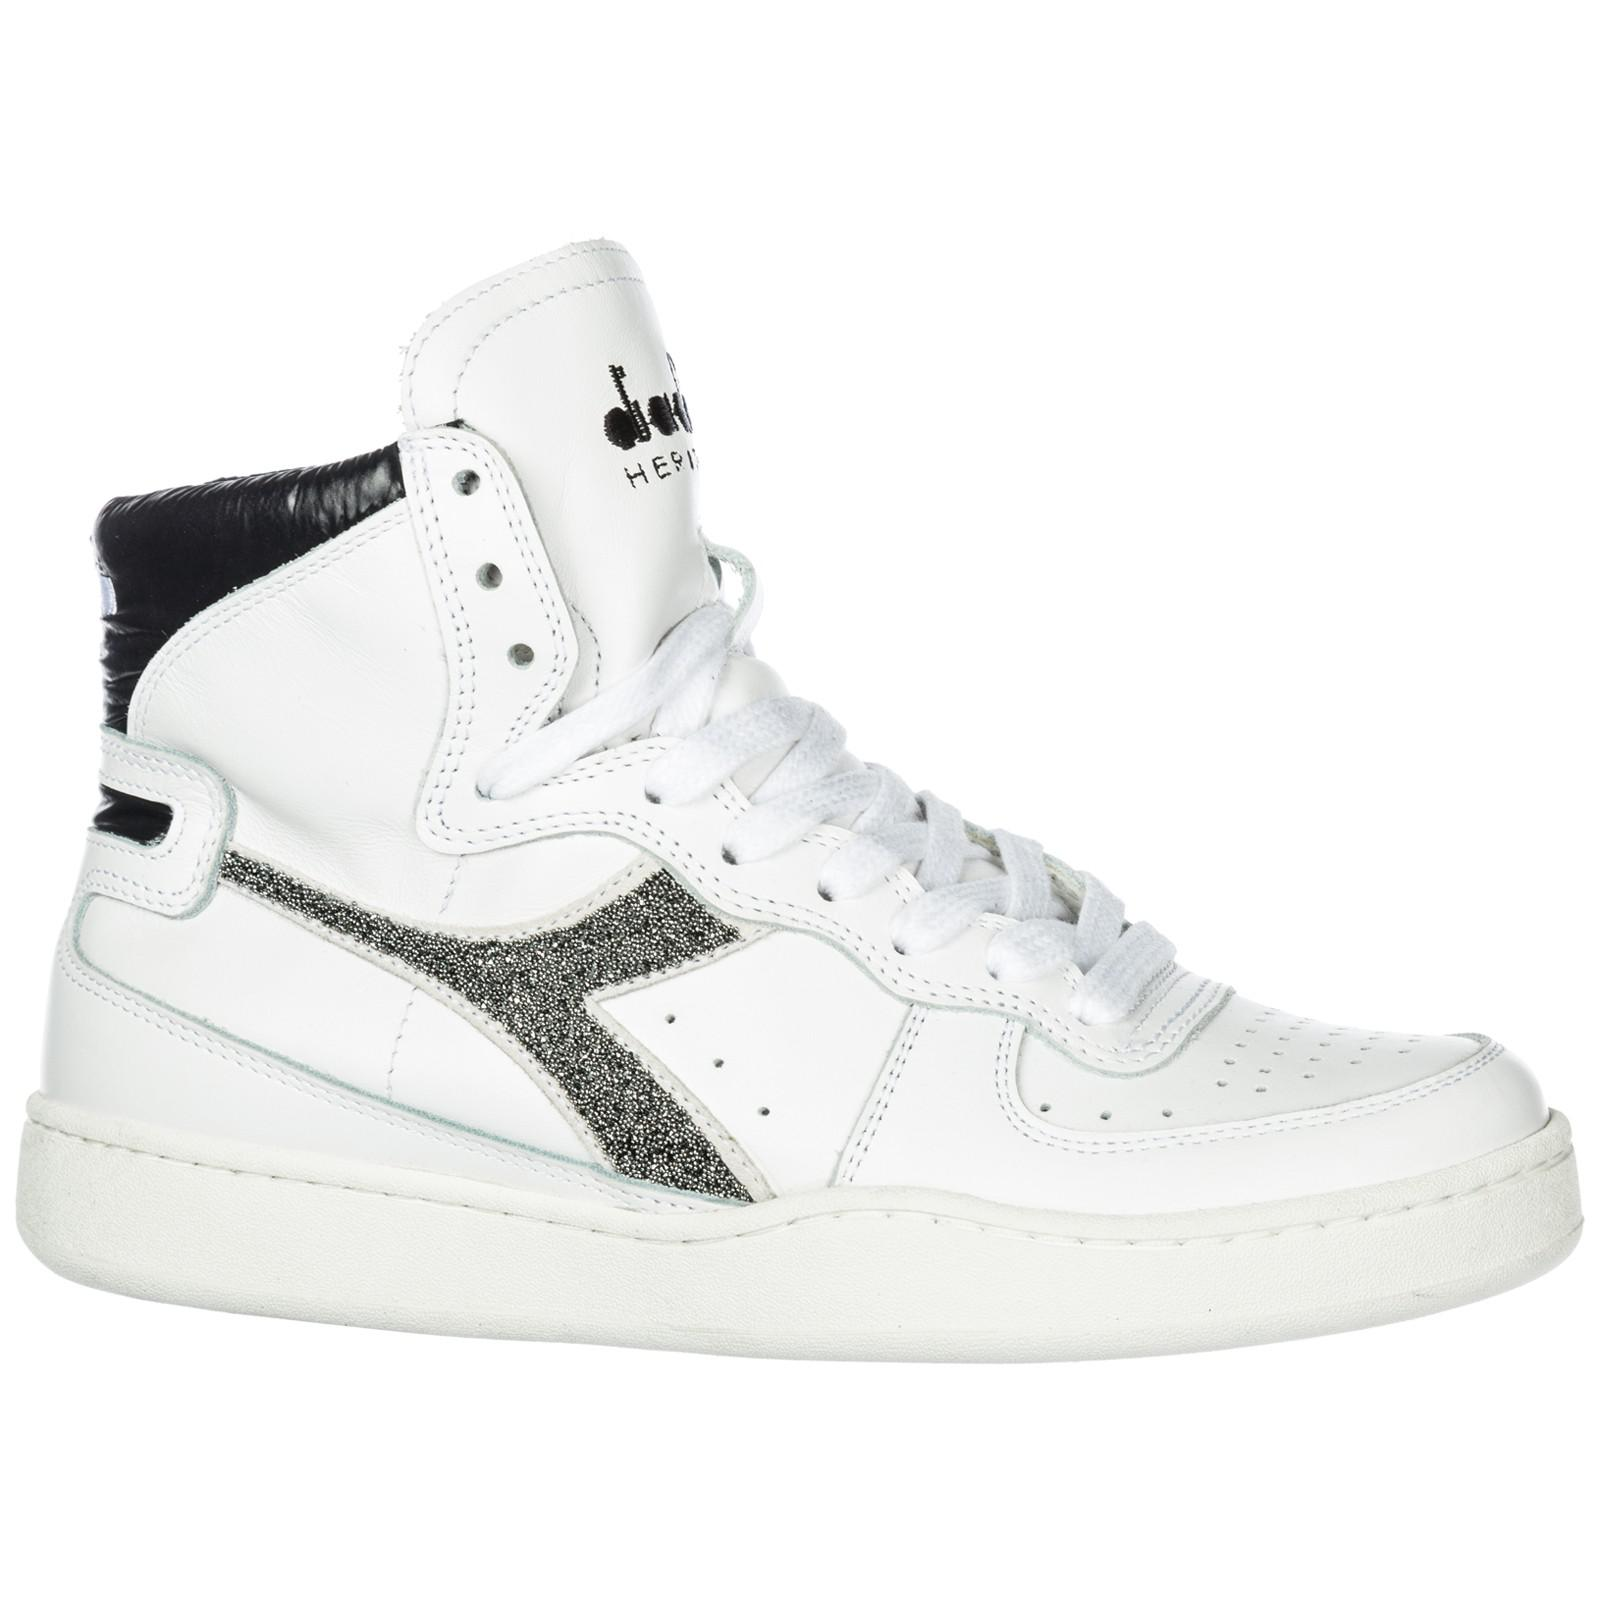 e1018df09eca Diadora Shoes High Top Leather Trainers Sneakers Mi Basket Lux in ...